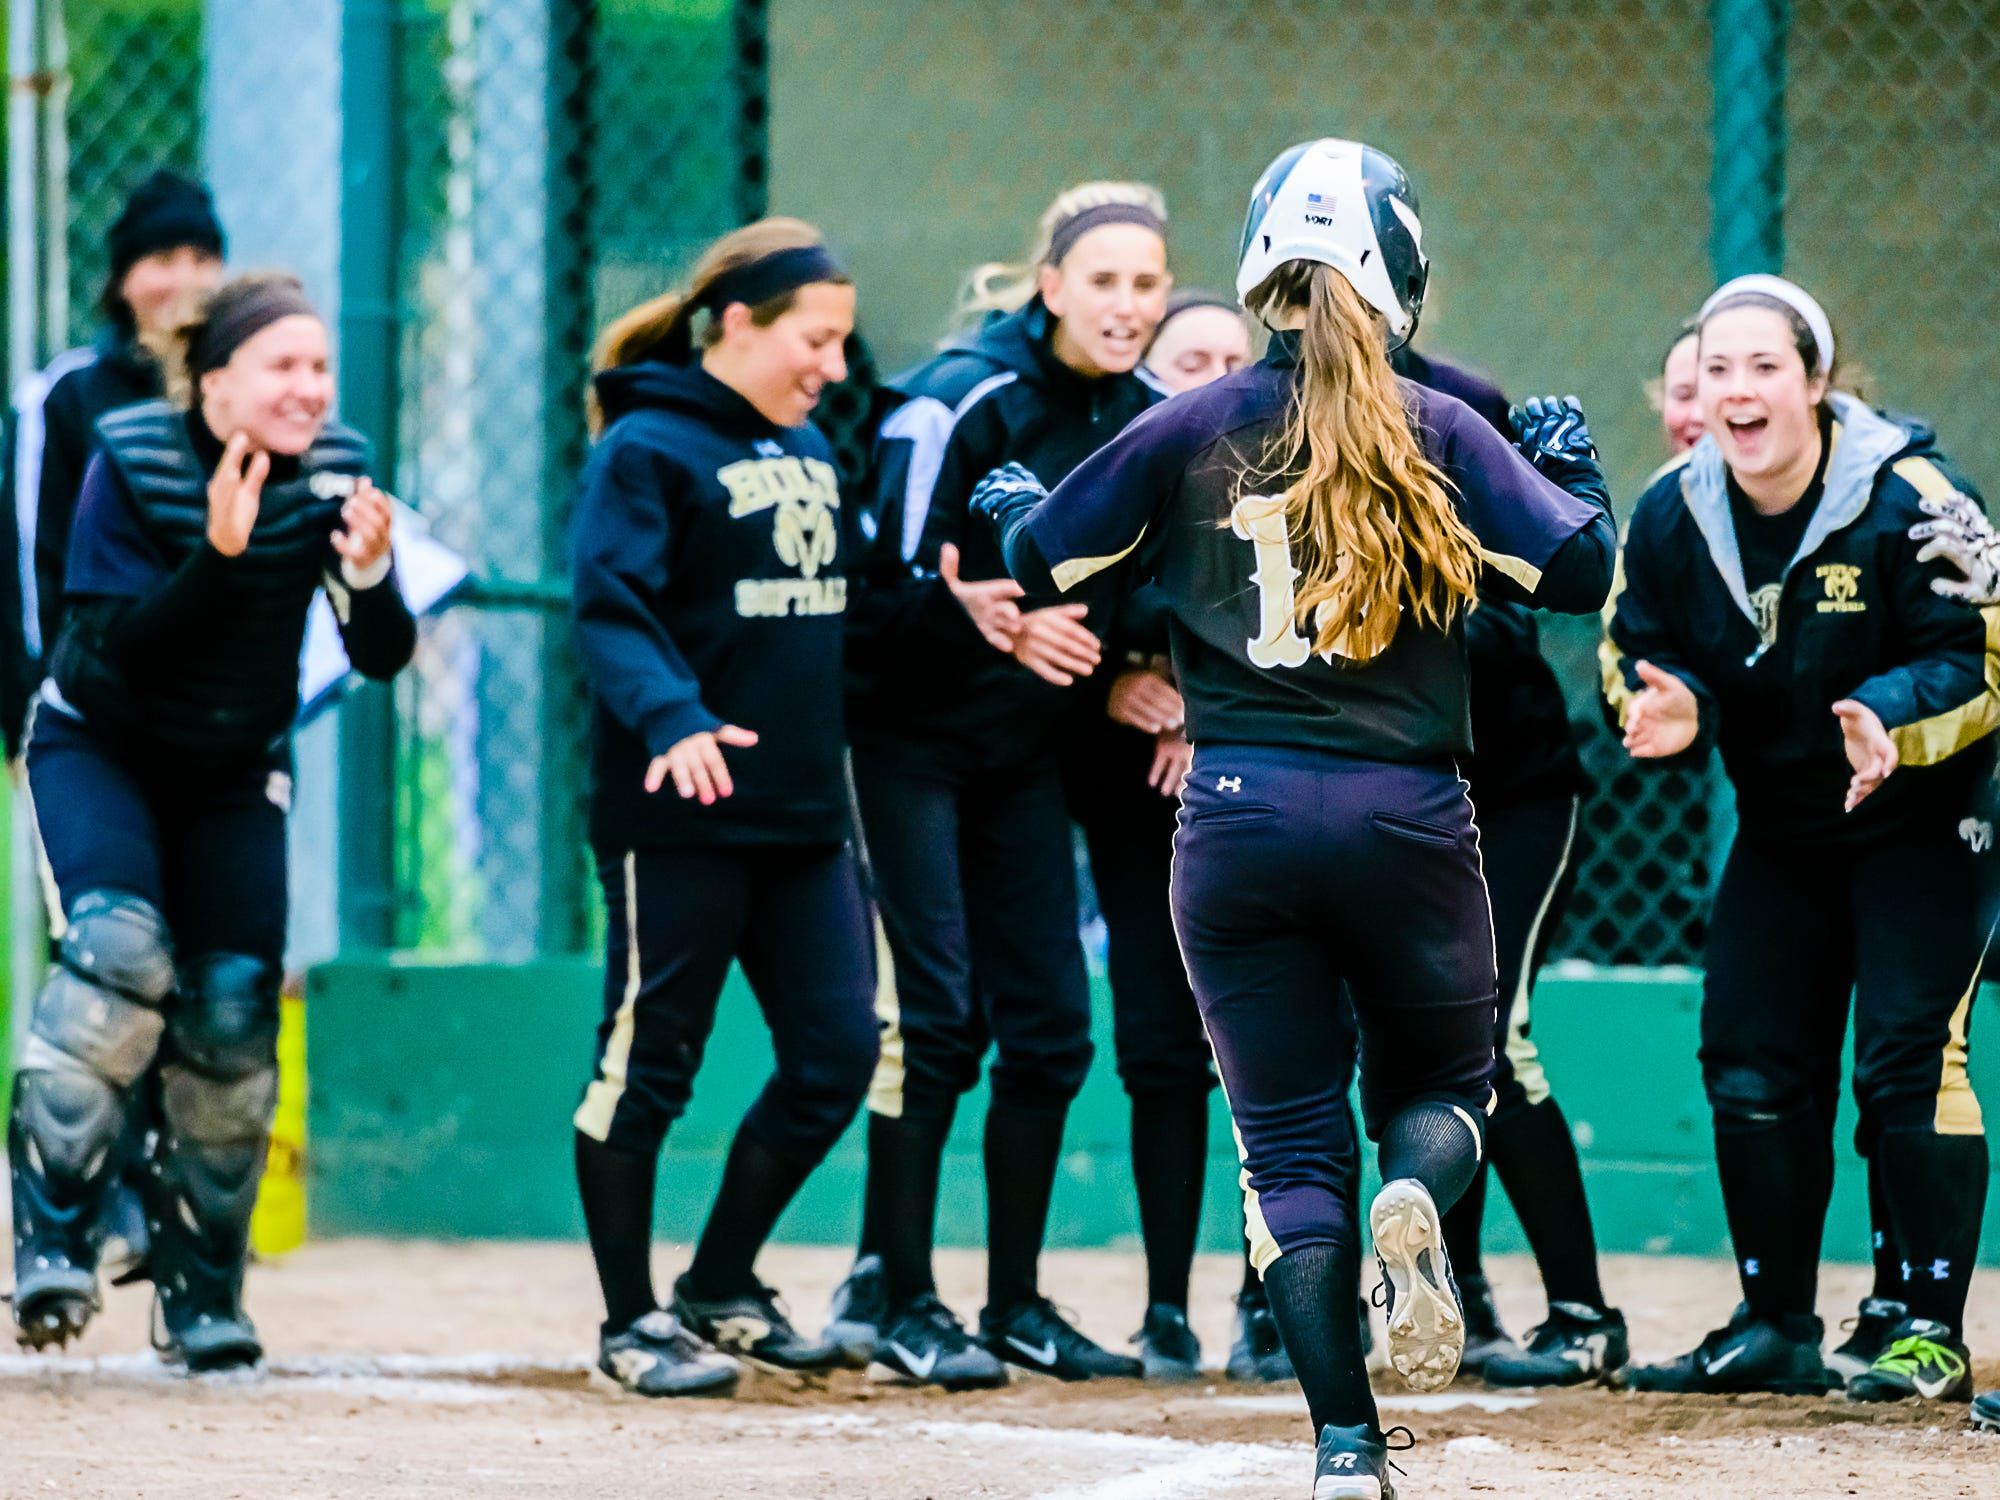 Olivia Cottom ,foreground, of Holt is greeted by her teammates after hitting a solo homerun in the 2nd inning of the Rams' Softball Classic championship game with St. Johns Tuesday May 19, 2015 at Ranney Park in Lansing. KEVIN W. FOWLER PHOTO